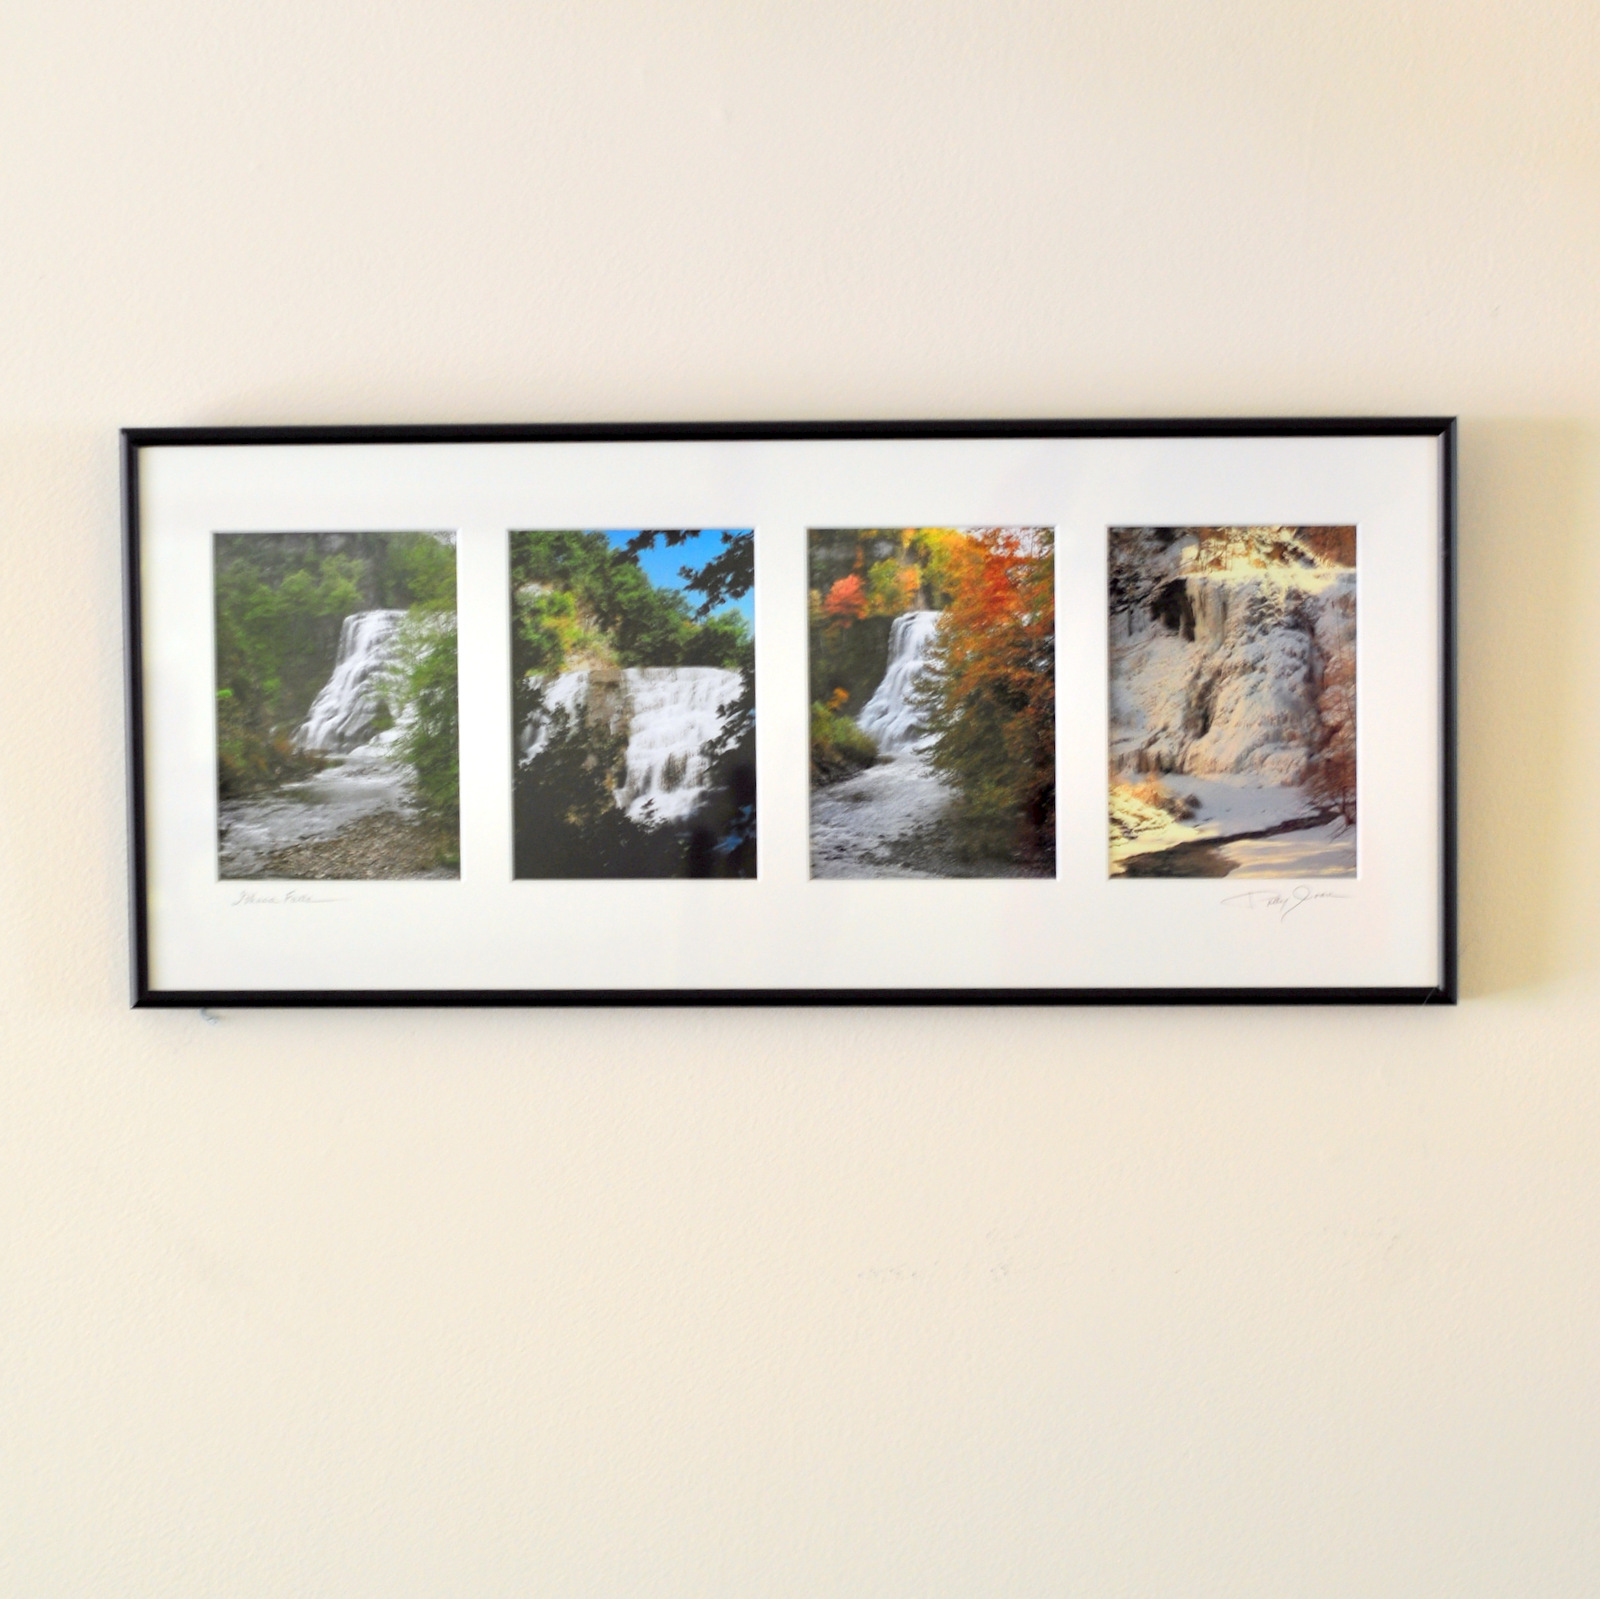 - Print dimensions are 11x25.5We use Nielsen metal frames in a matte black finish.Mats are soft white archival acid free Bainbridge.Prints are PMA mounted on acid free foam core.